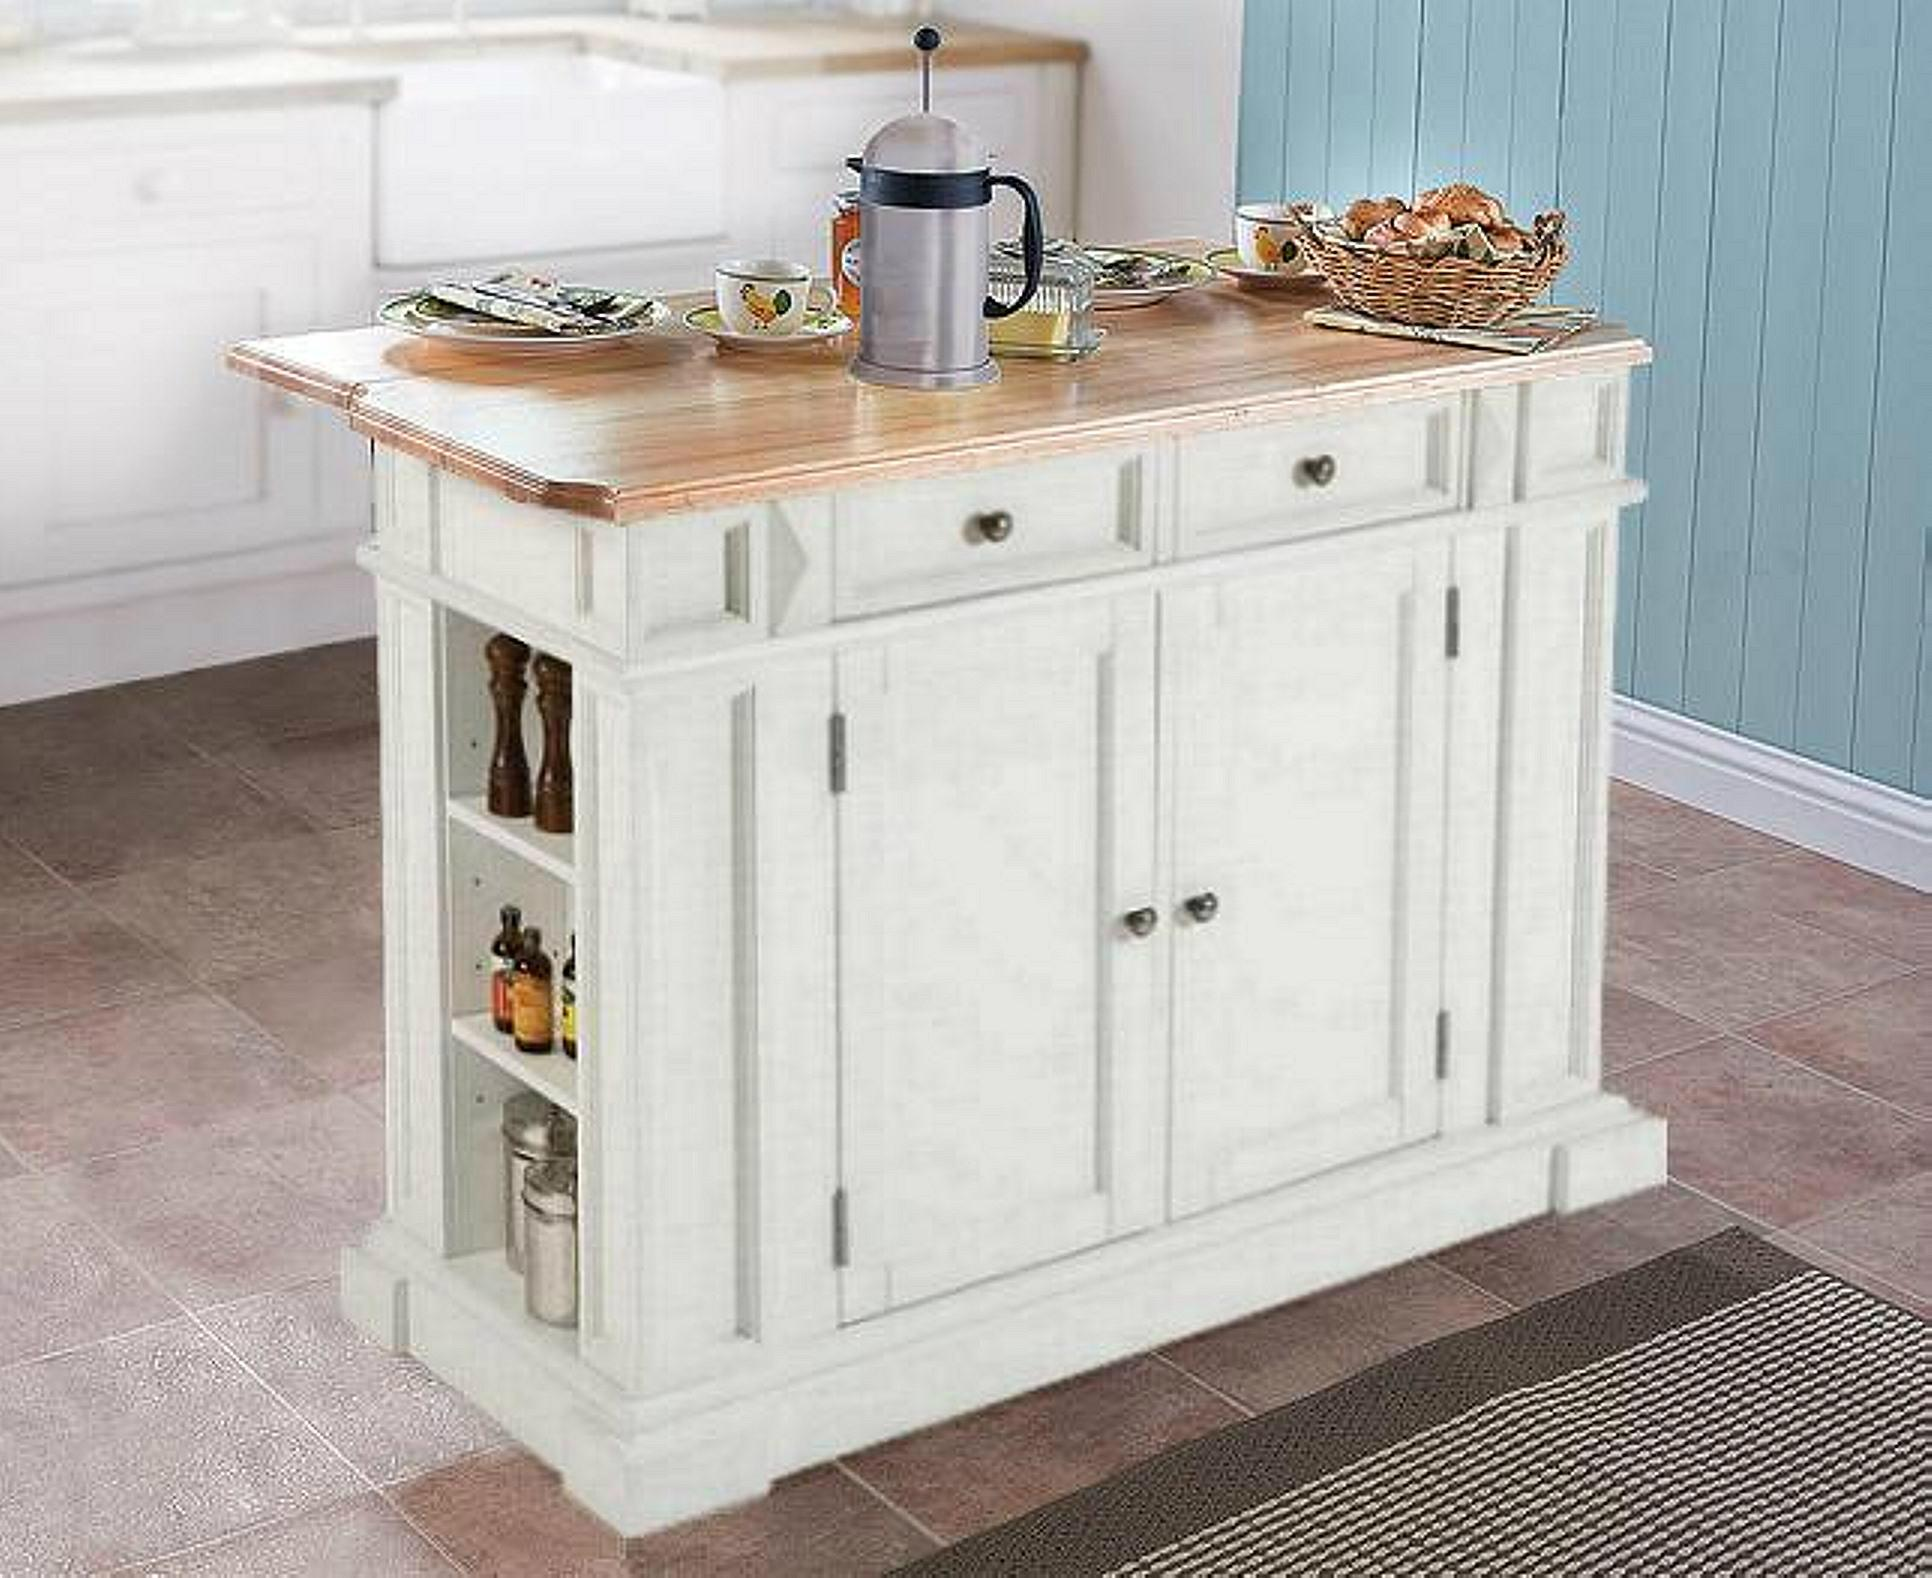 Home Styles Butcher Block Top Kitchen Island : Home Styles Butcher Block White Portable Kitchen Island Ideas - WD-3736 - Mighty (Taiwan ...